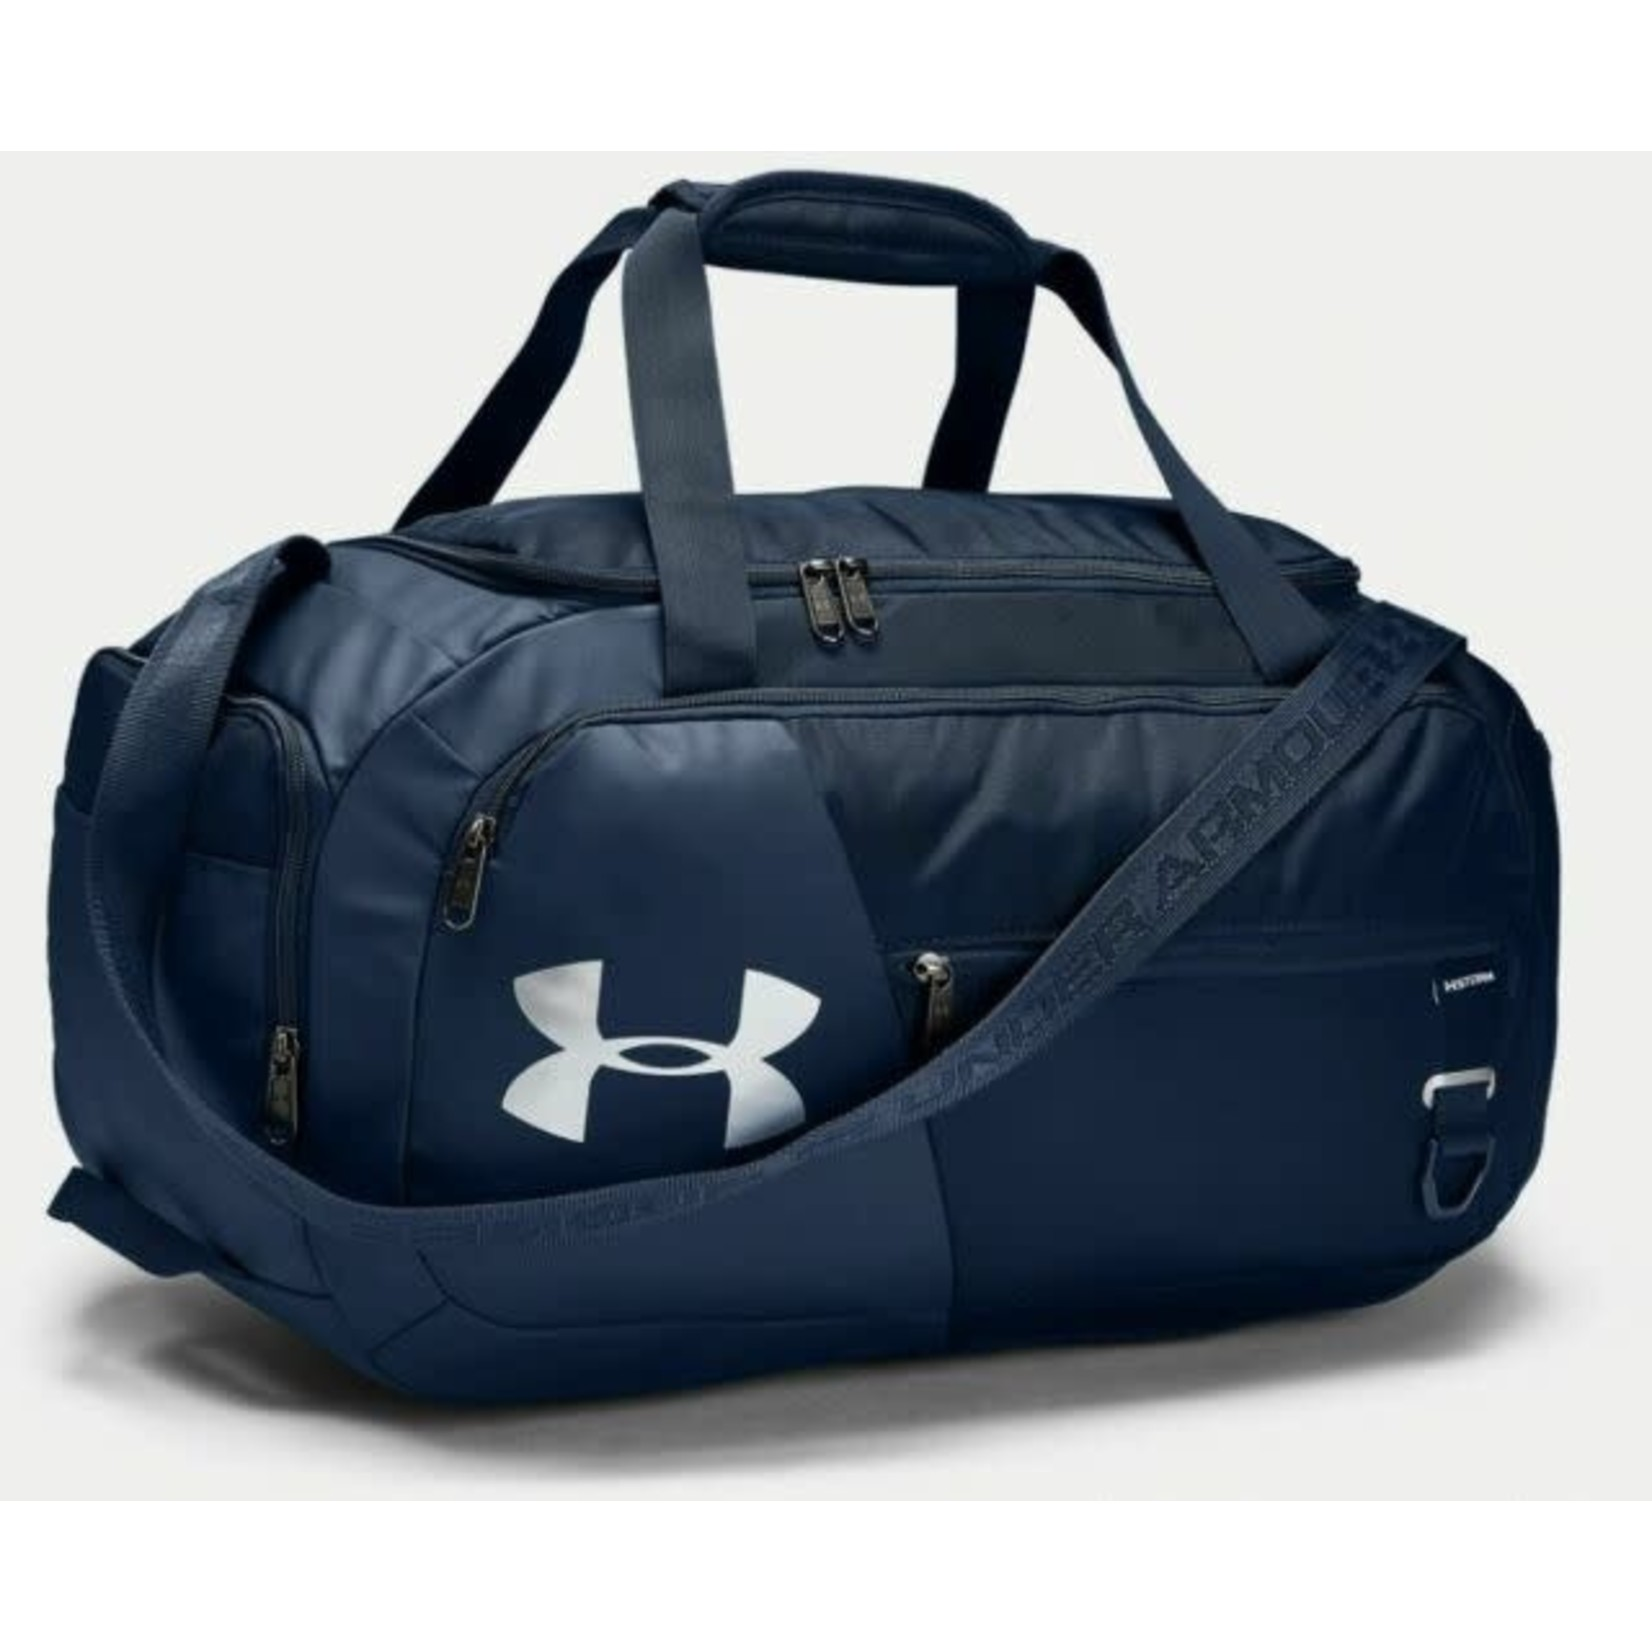 Under Armour Under Armour Duffle Bag, Undeniable 4.0, MD